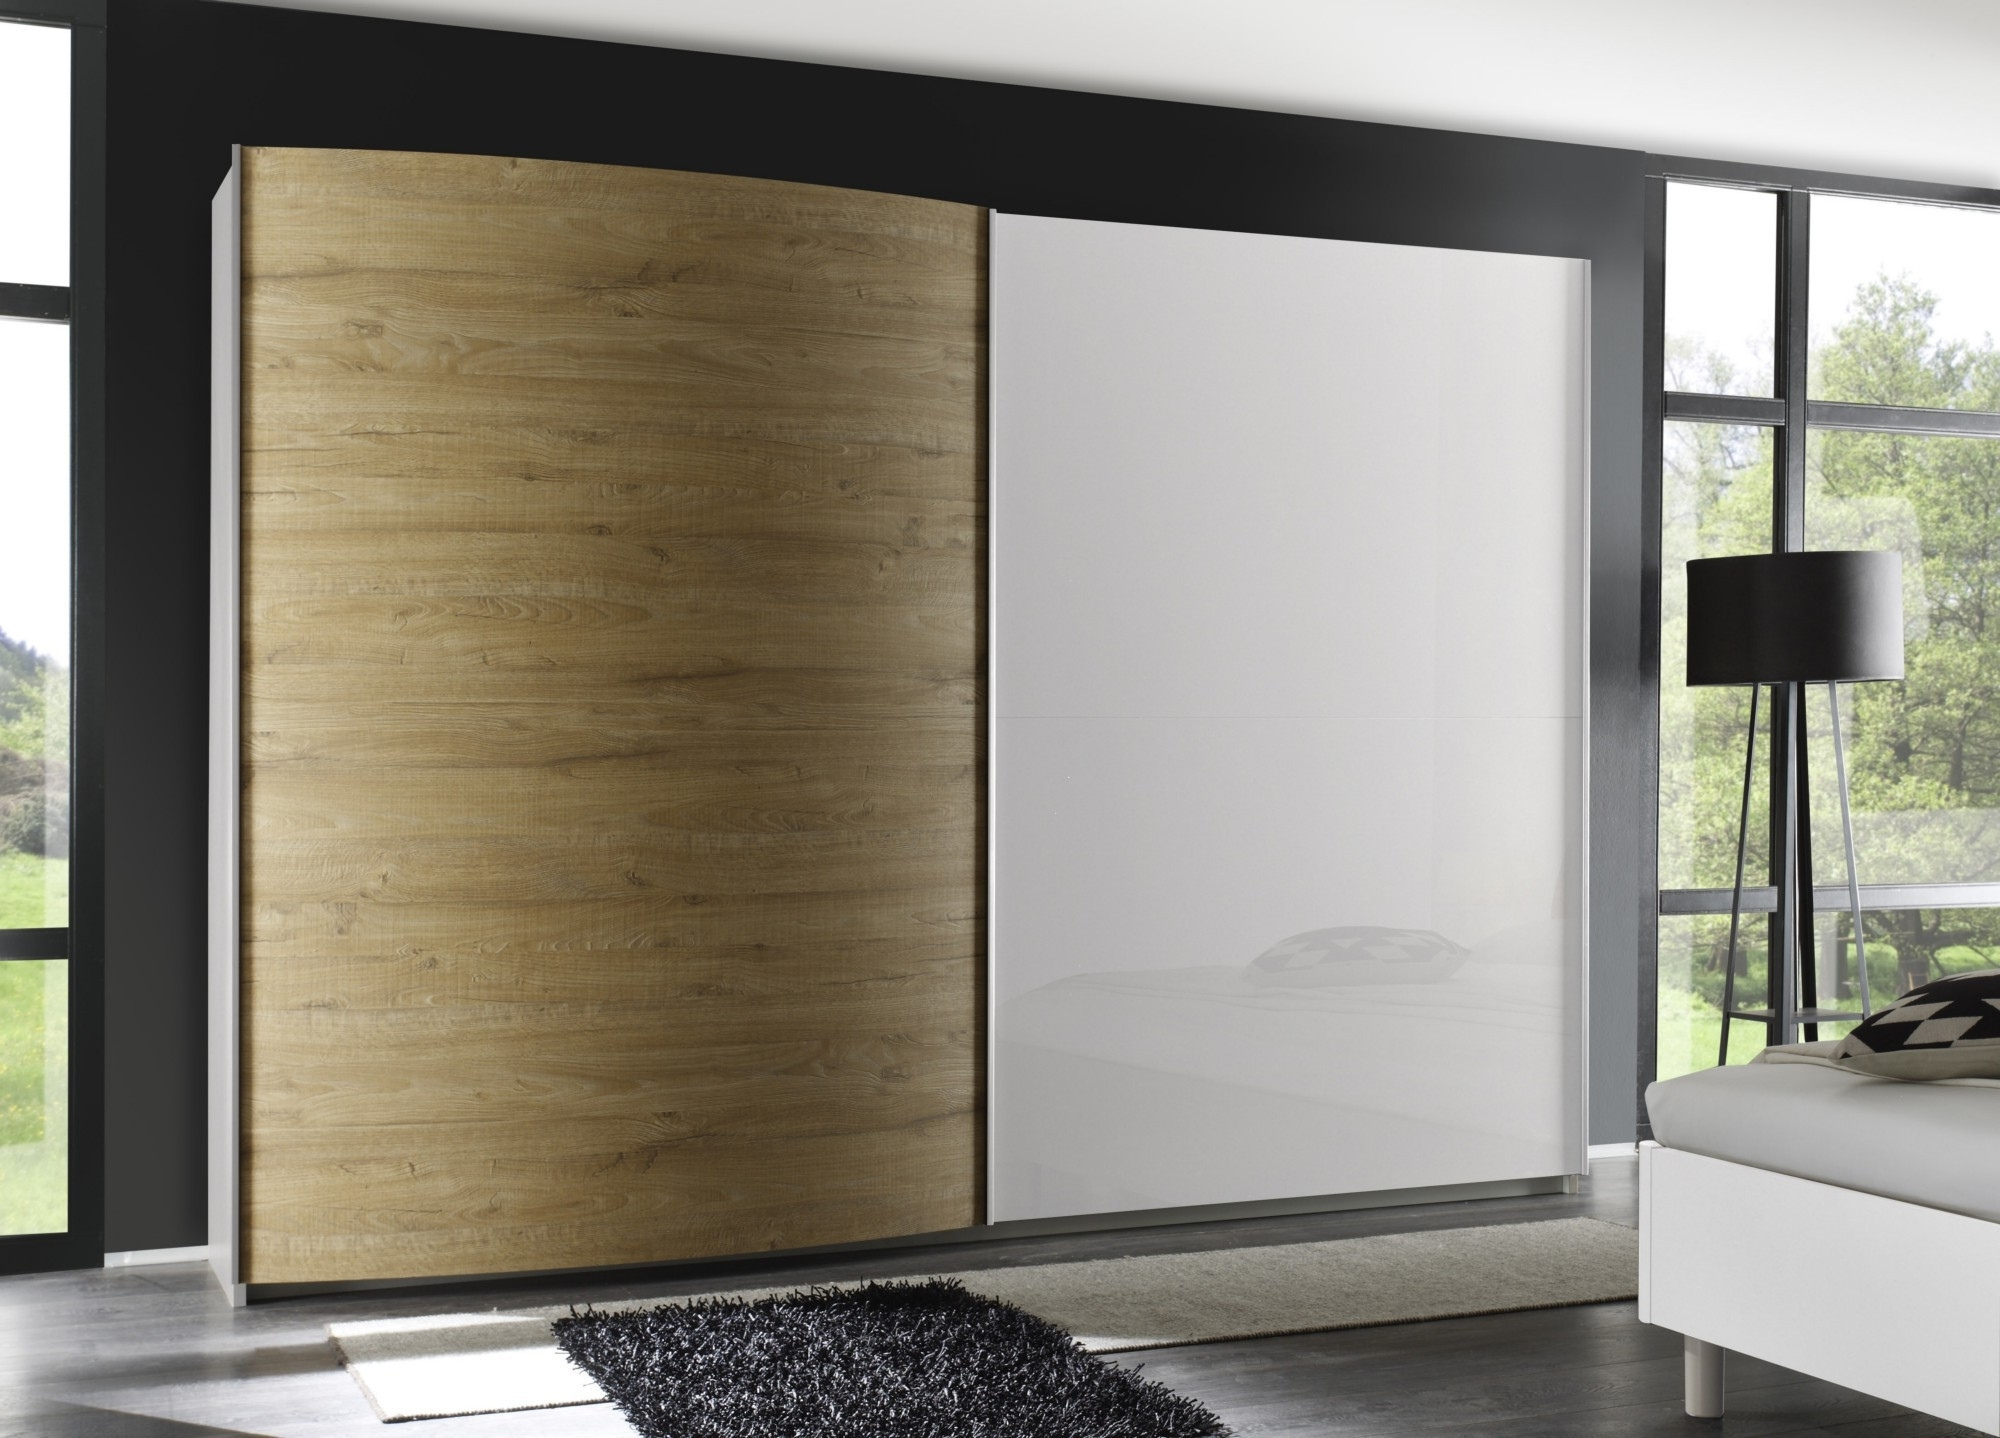 Fashionable Tambura Curved Sliding Doors Wardrobe, White + Miele Buy Online At Throughout Curved Wardrobes Doors (View 7 of 15)